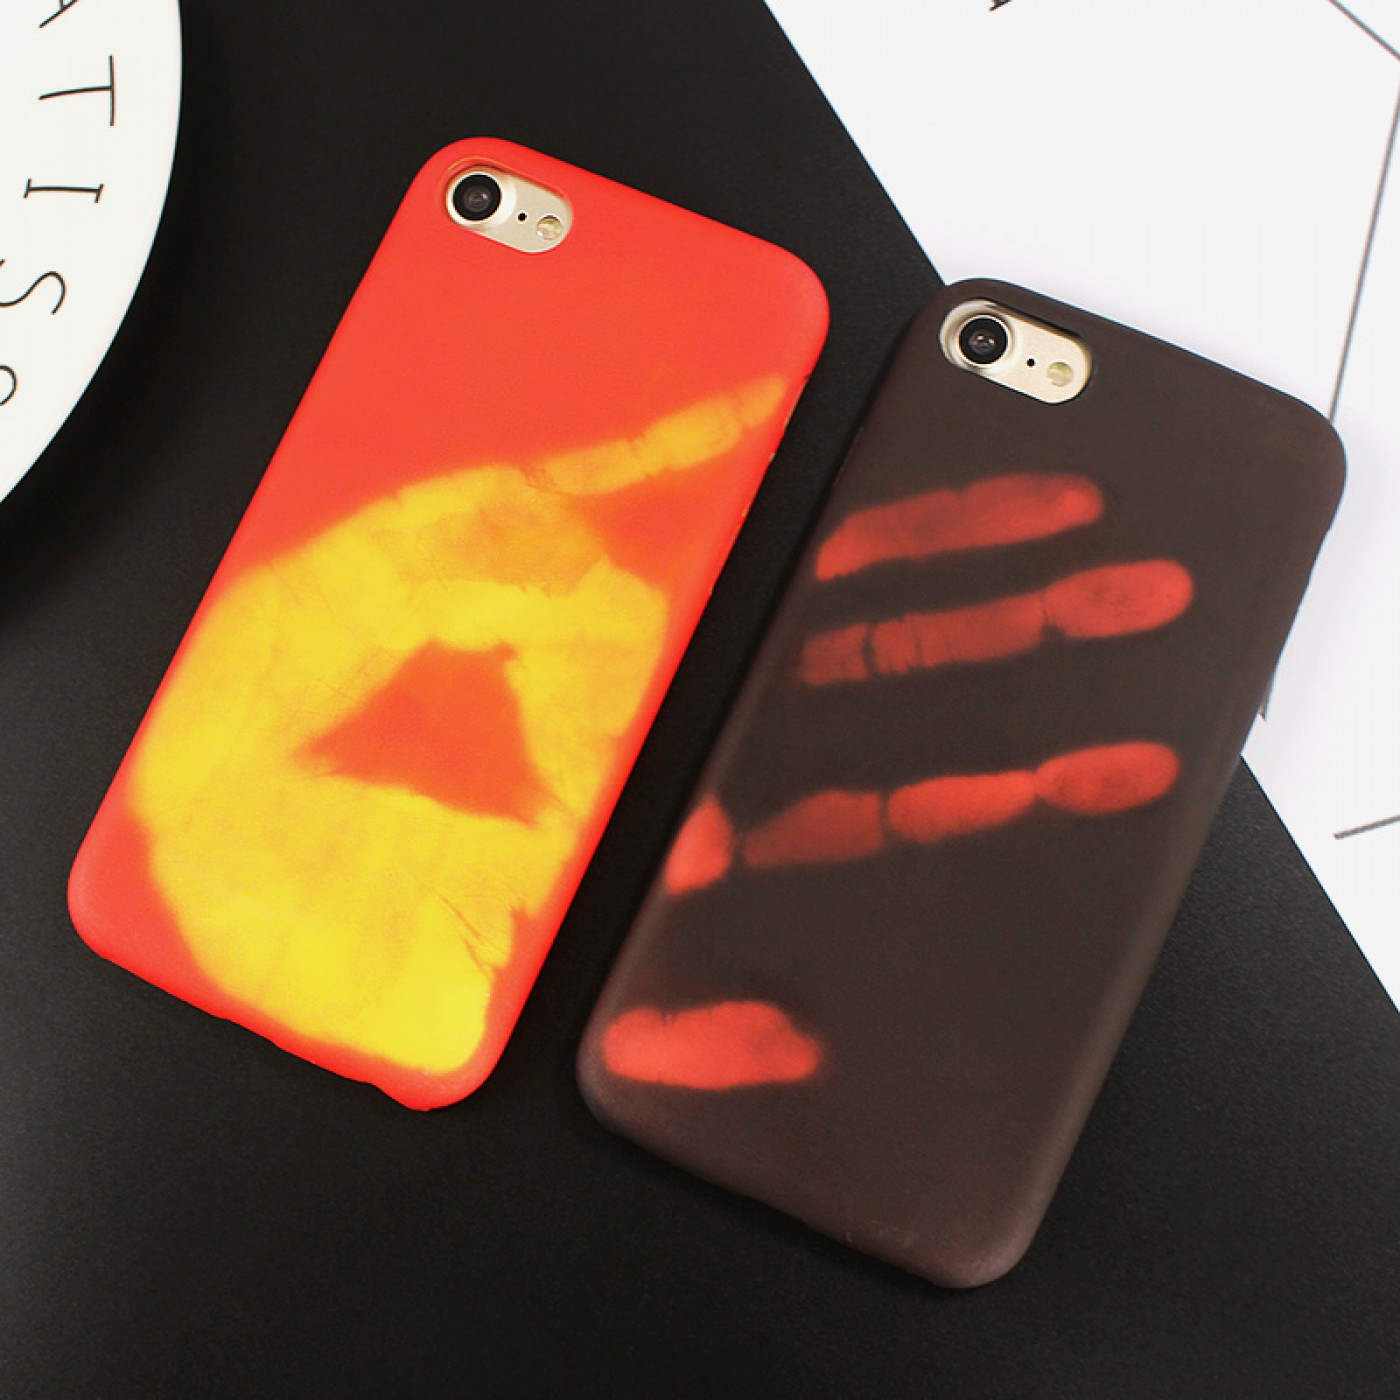 Iphone Hulle 7 >> Coque iPhone 7 Plus / 8 Plus - Thermosensible rouge